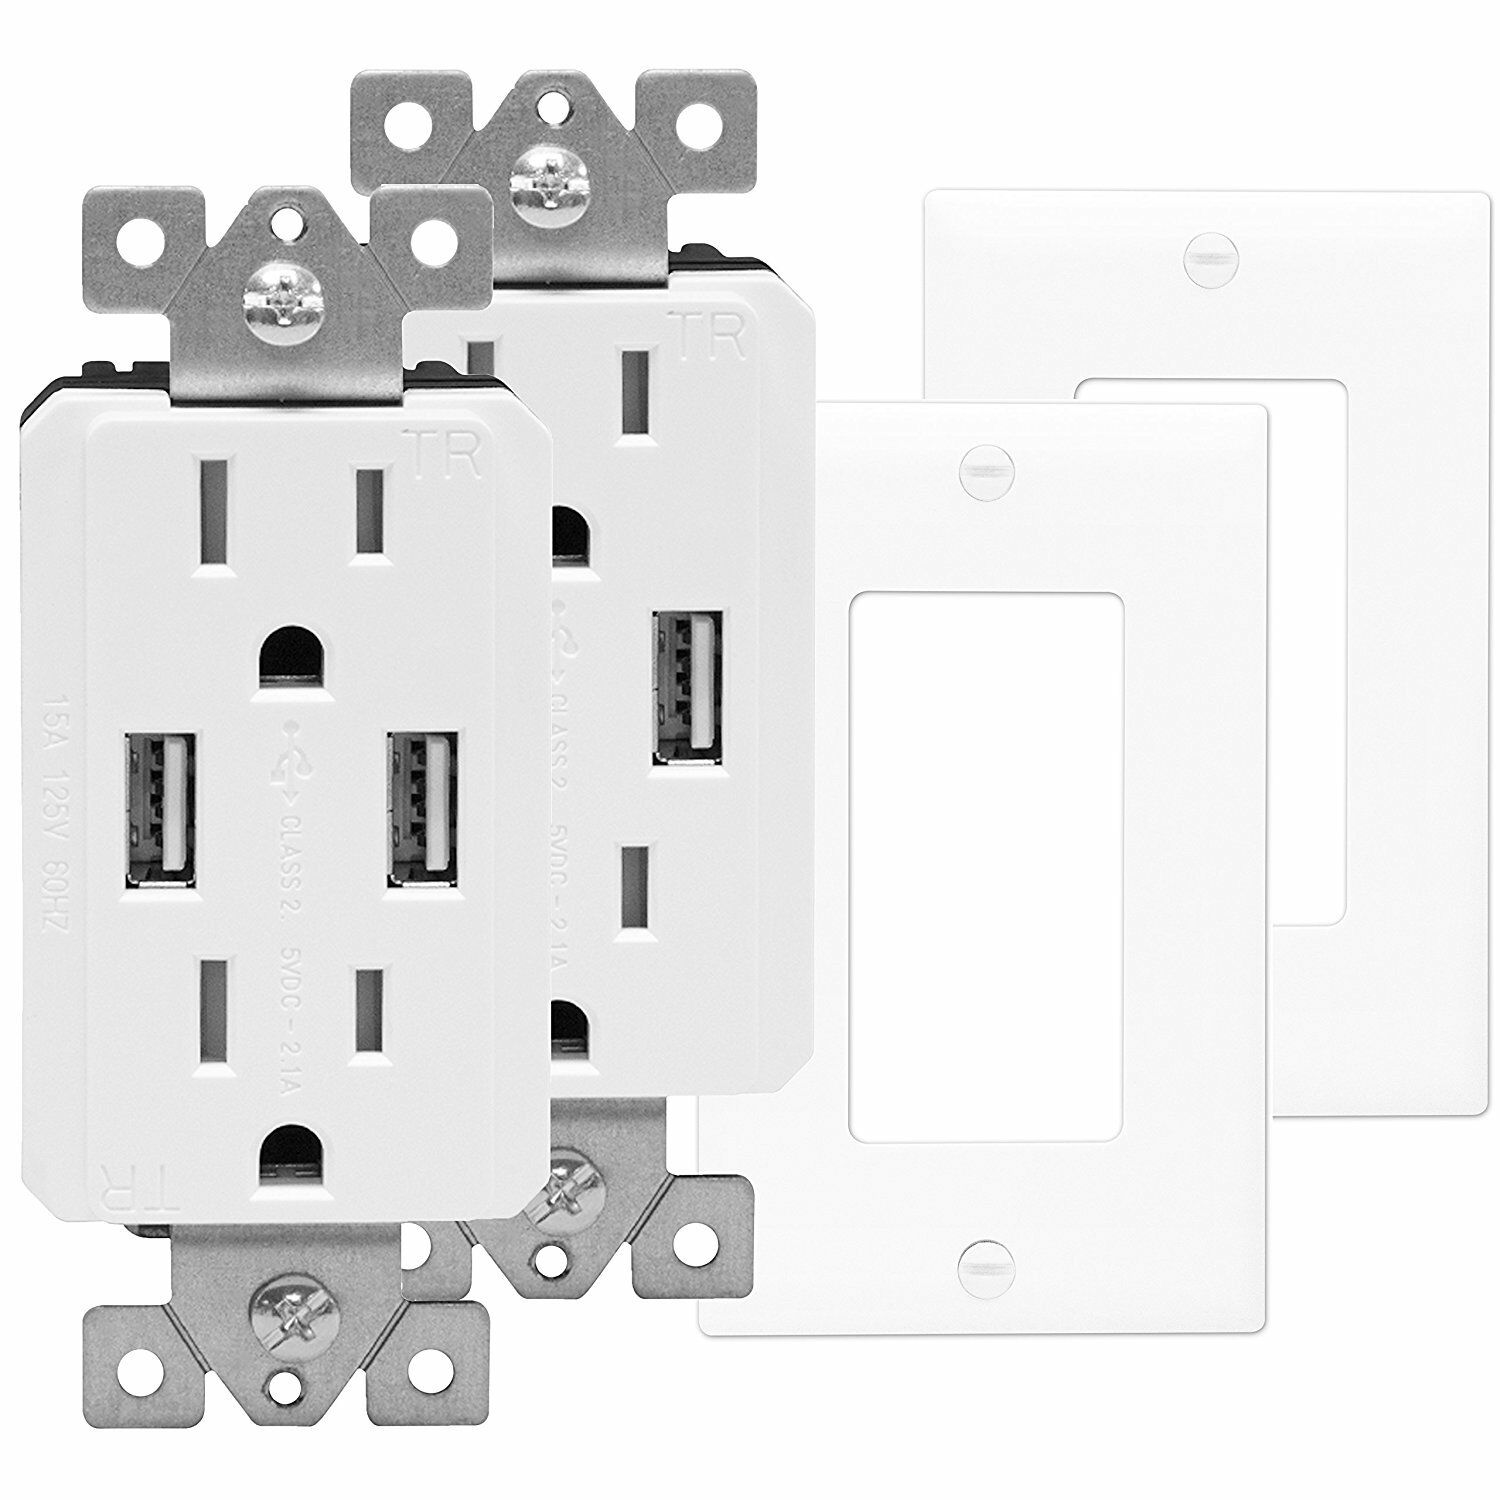 Blank Switch Plate Amusing Brushed Stainless Steel Blank Outlet Cover Switch Wall Plates 1 2 Inspiration Design